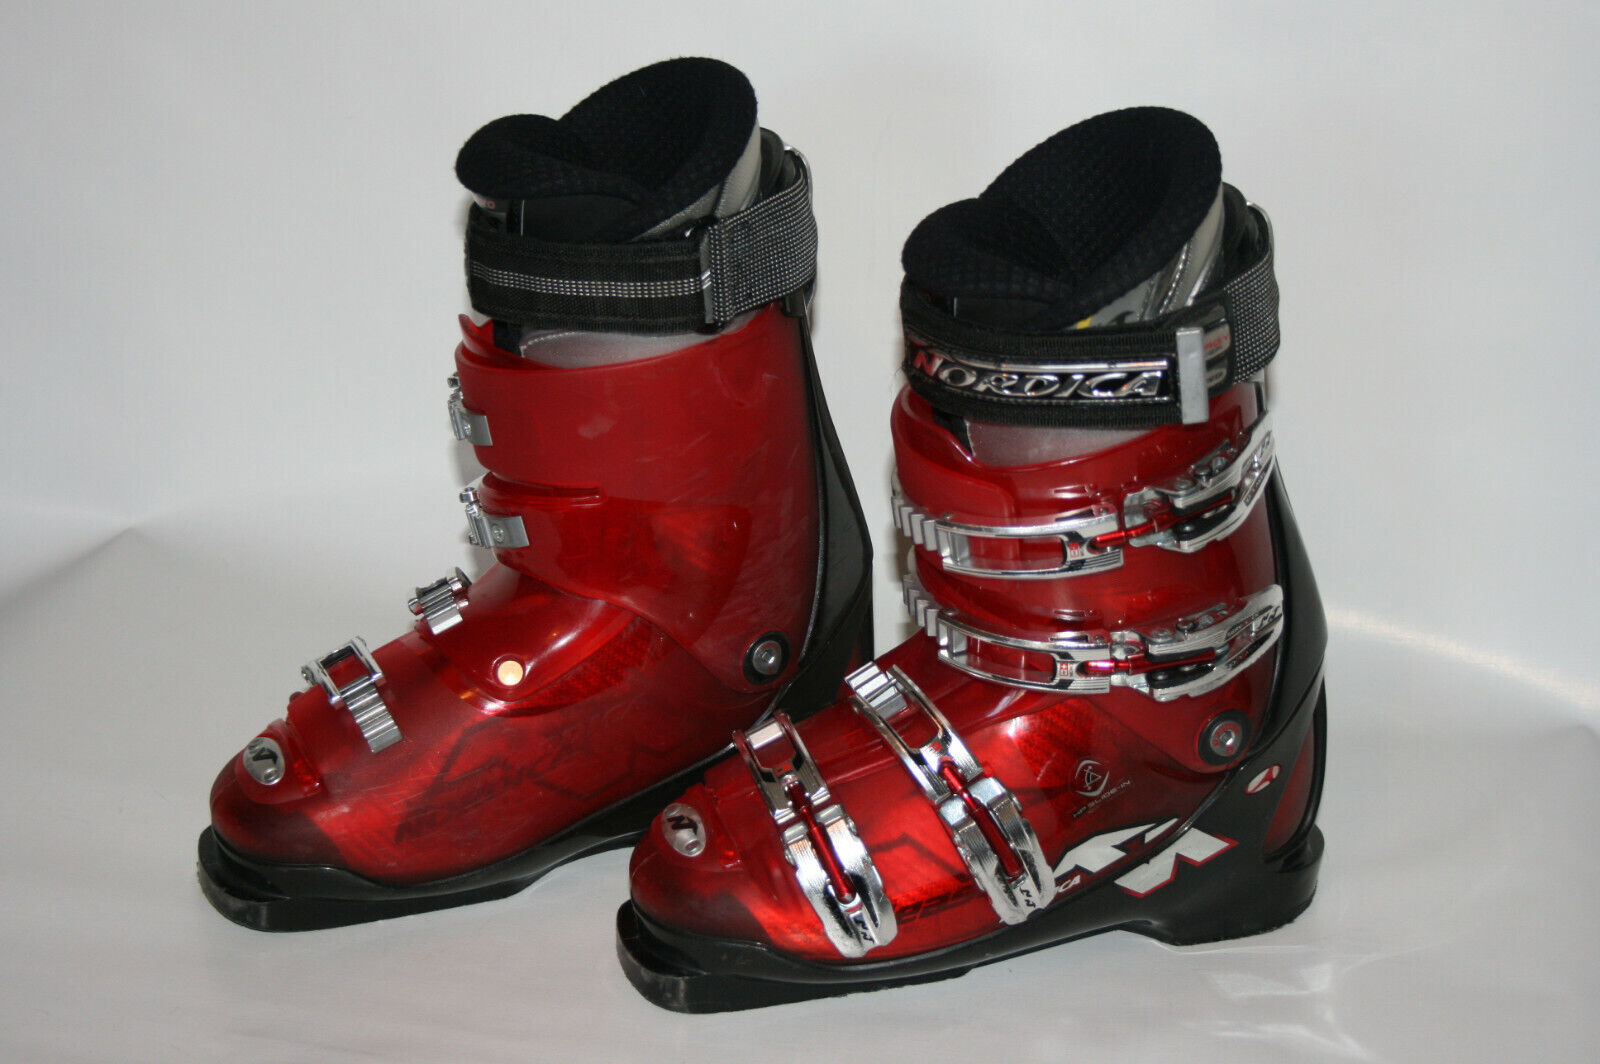 Ski Boots - Nordica Beast - Red Performance Snow - US Mens 7 7.5 - MONDO 25 25.5